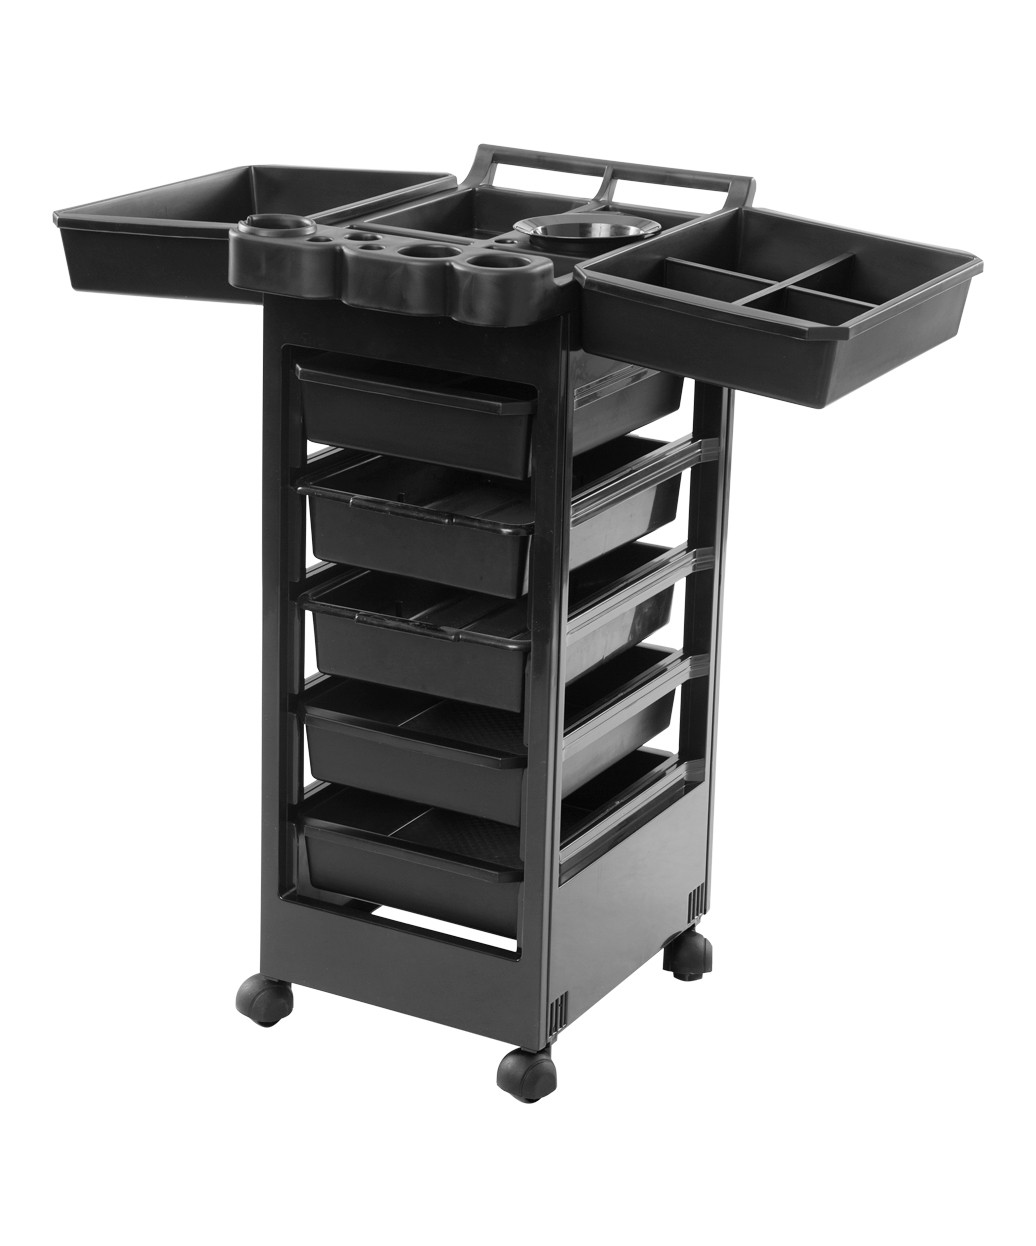 3010 Salon Roller Cart from Buy-Rite Beauty: Closed Drawers